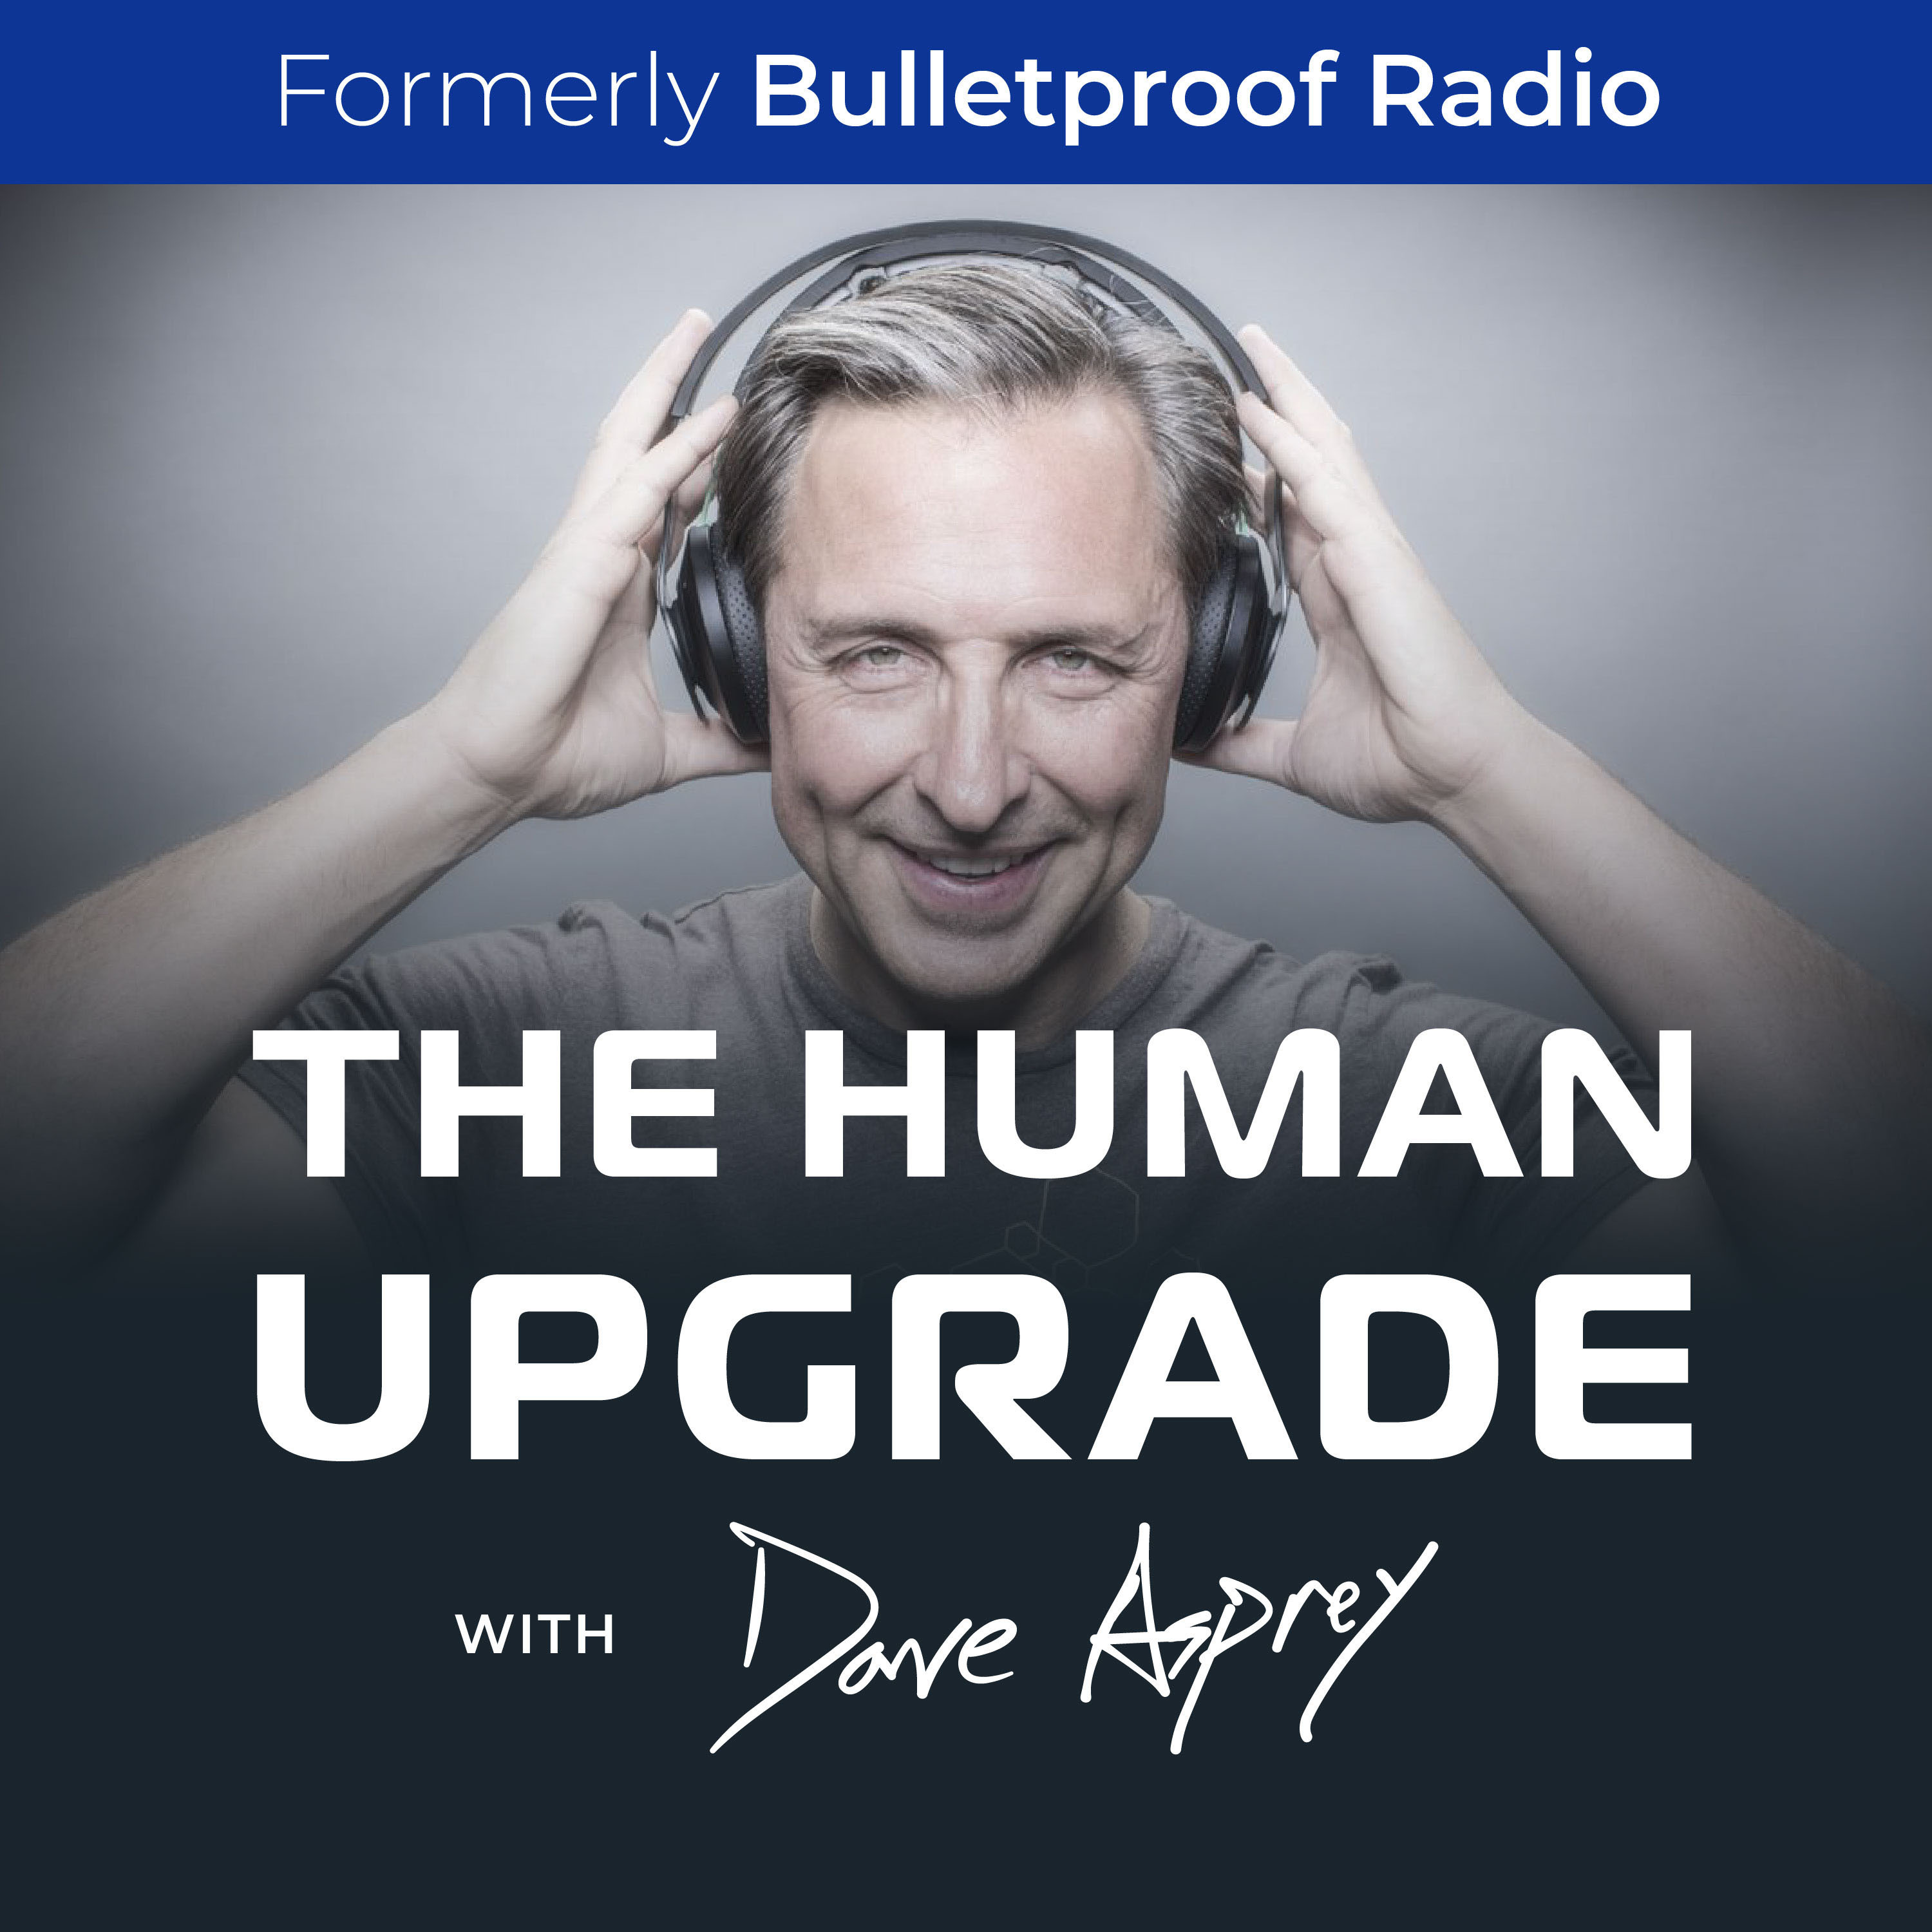 The Human Upgrade with Dave Asprey—formerly Bulletproof Radio podcast